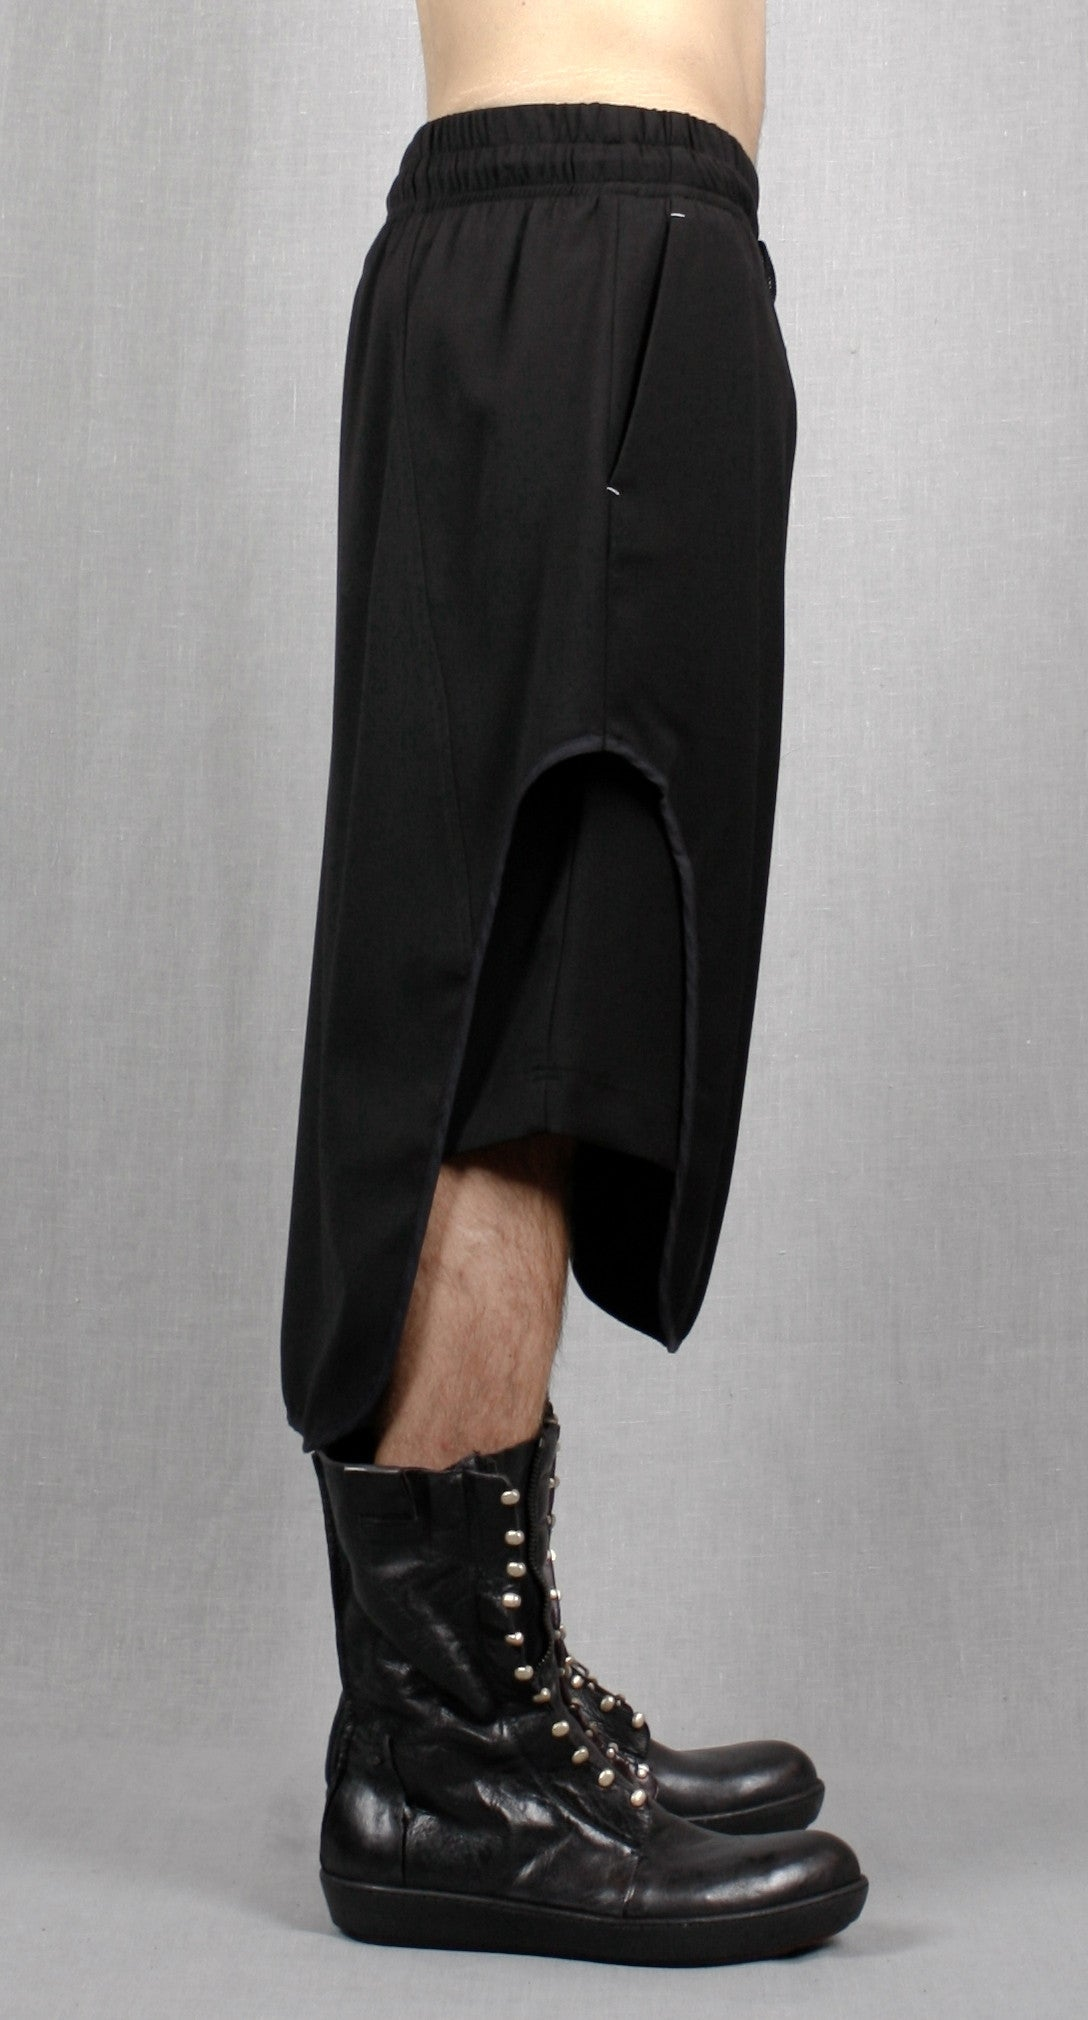 Black Cotton Jersey Short Pants with Leather Trimmed Sides